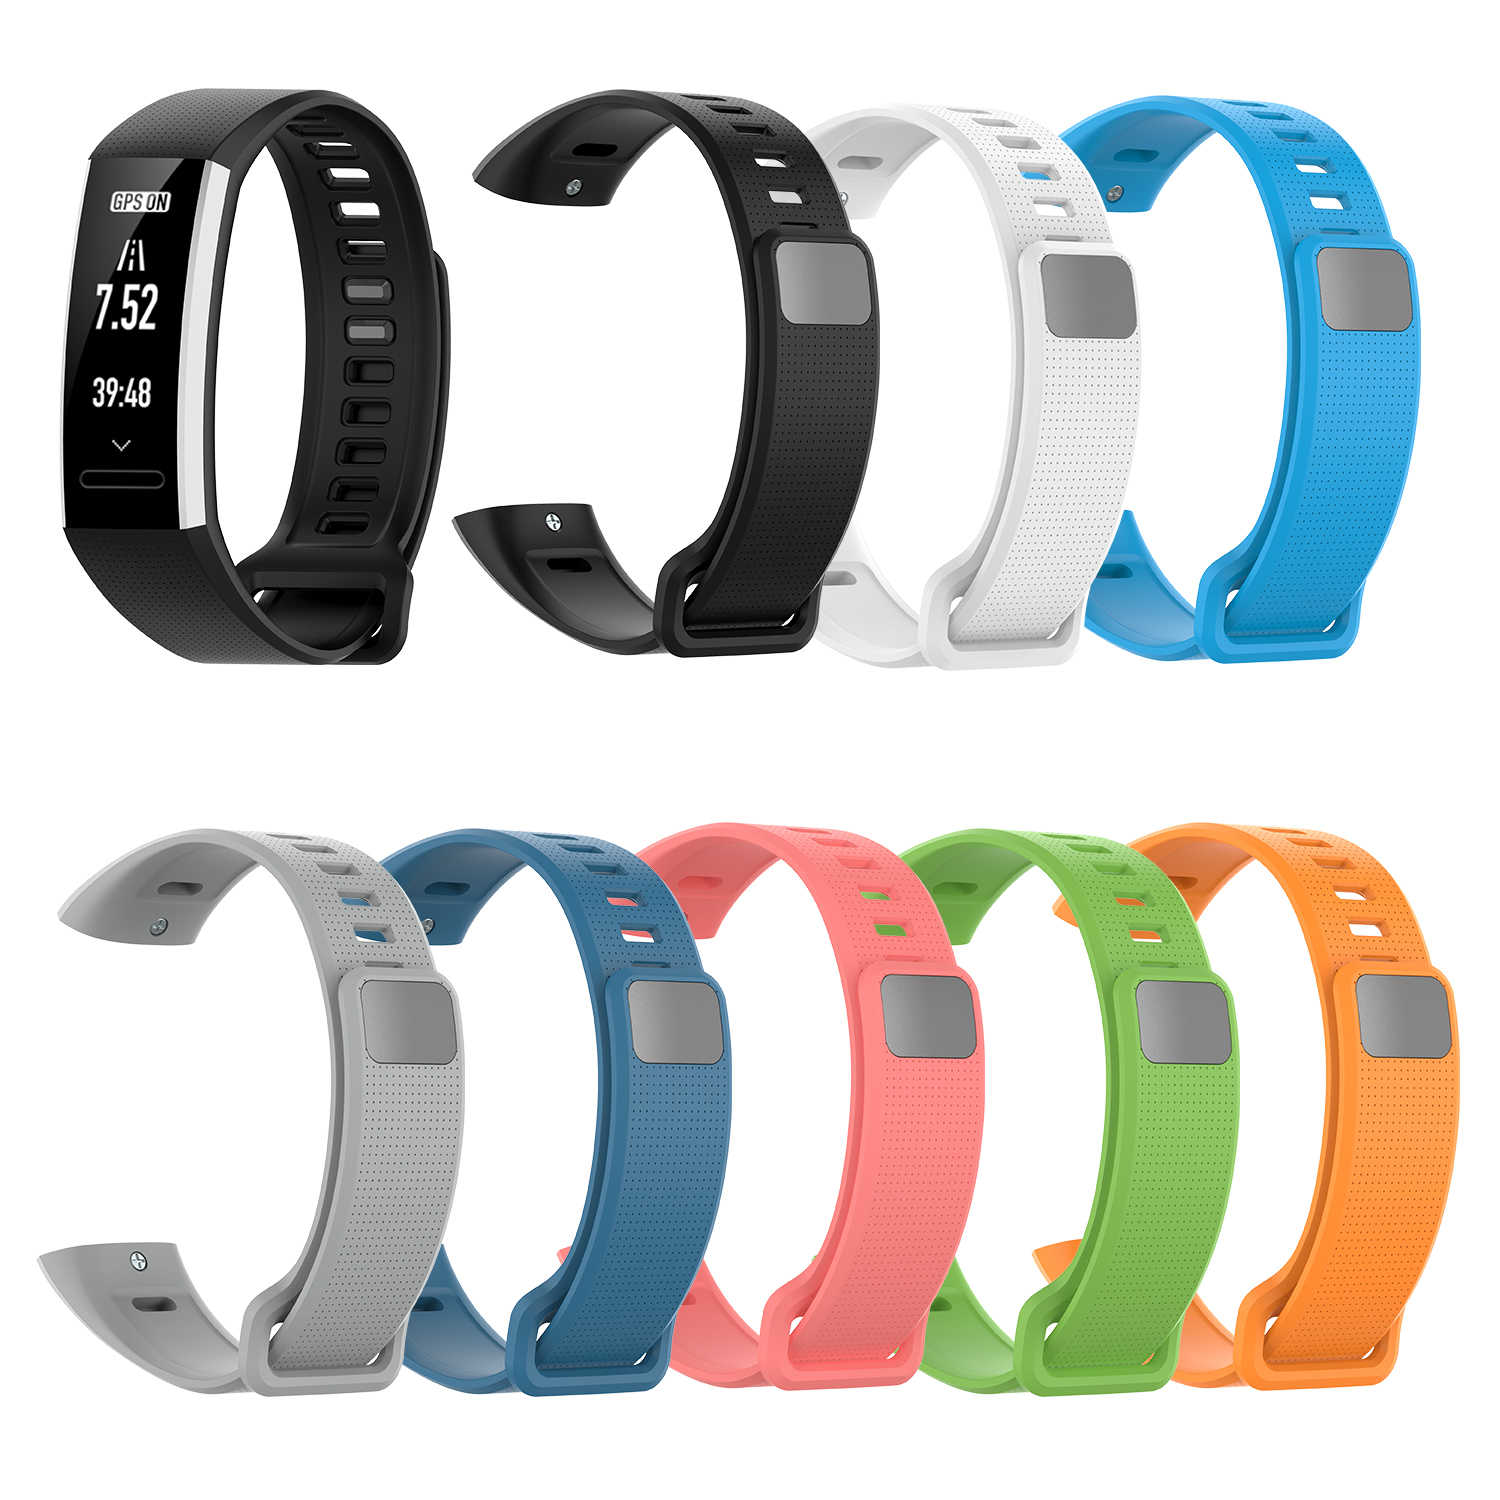 Strap In Stock TPE Bracelet for Huawei Honor Band2 Pro Band2 ERS-B19 ERS-B29 Sports Automated Bracelet Group Honor Band  Belt